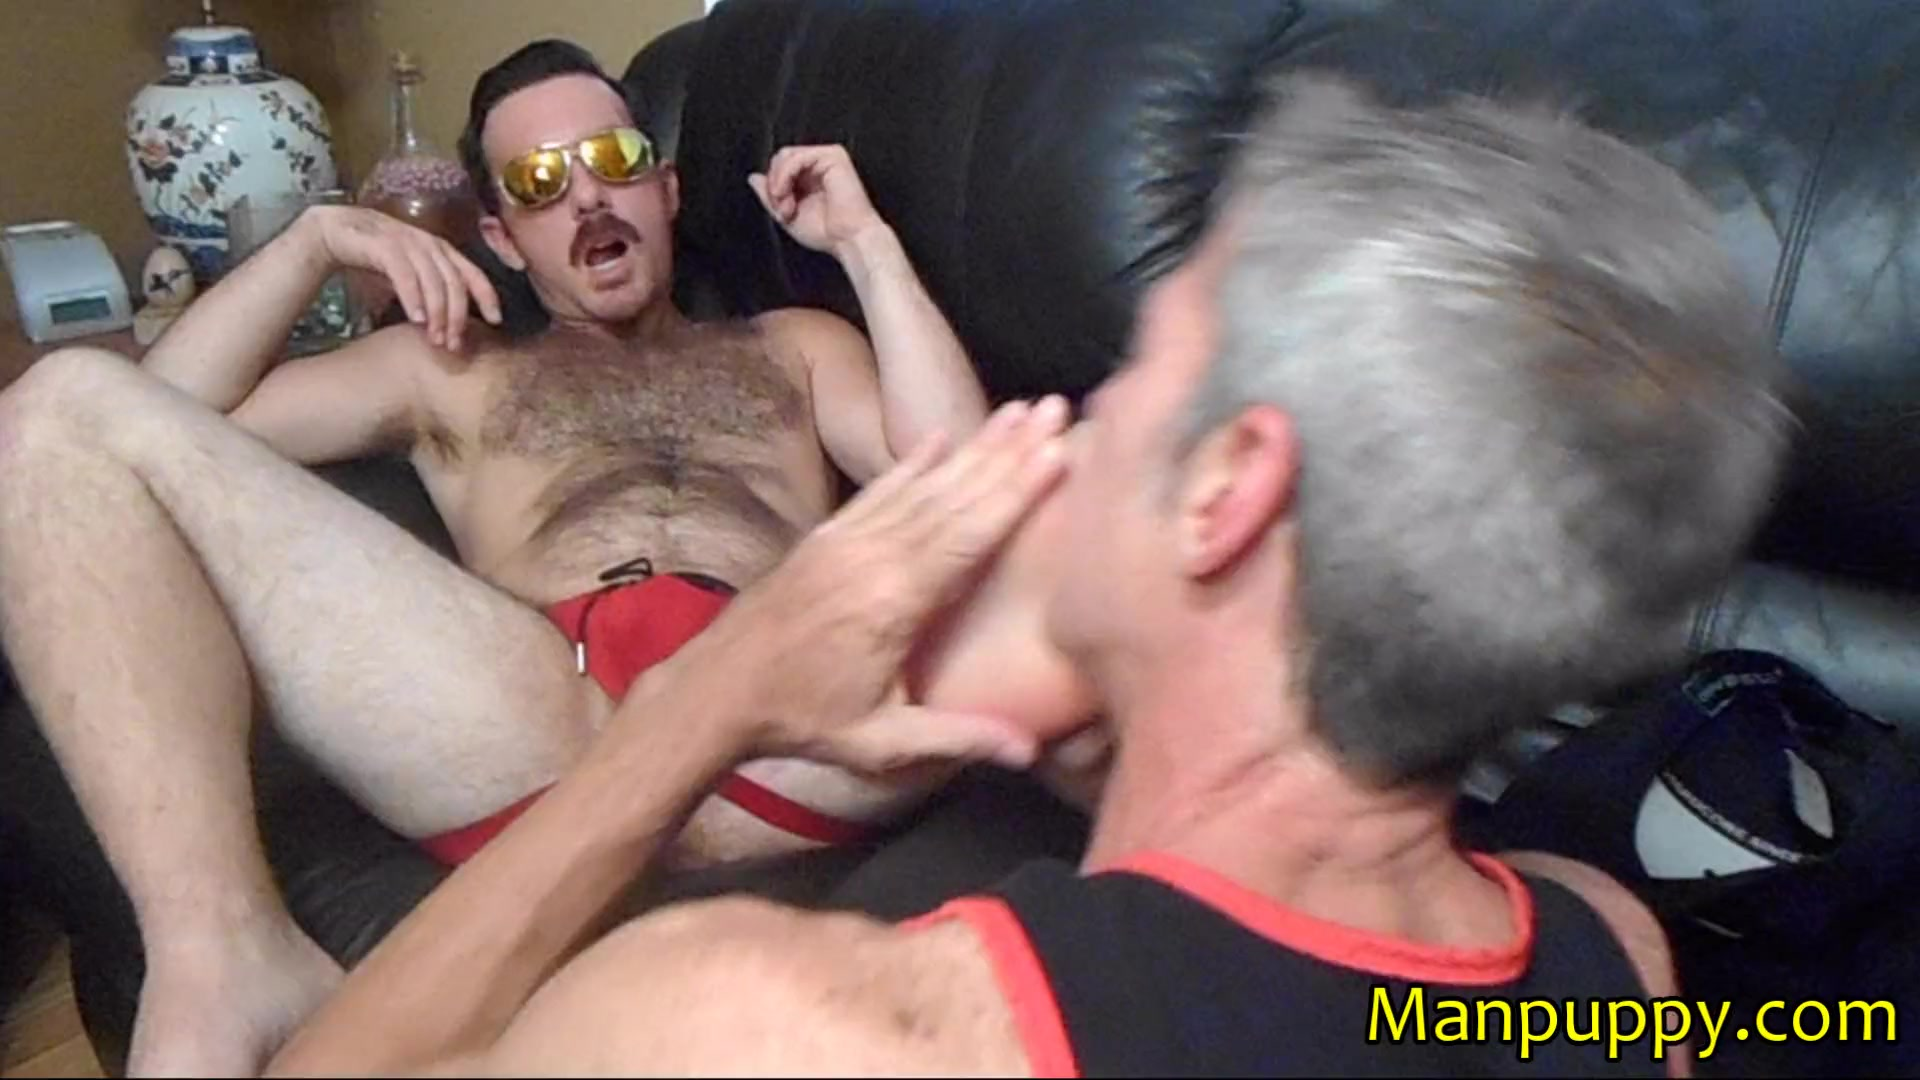 Beargaysvideos Porno bear cub foot domination on gay dilf - richard lennox